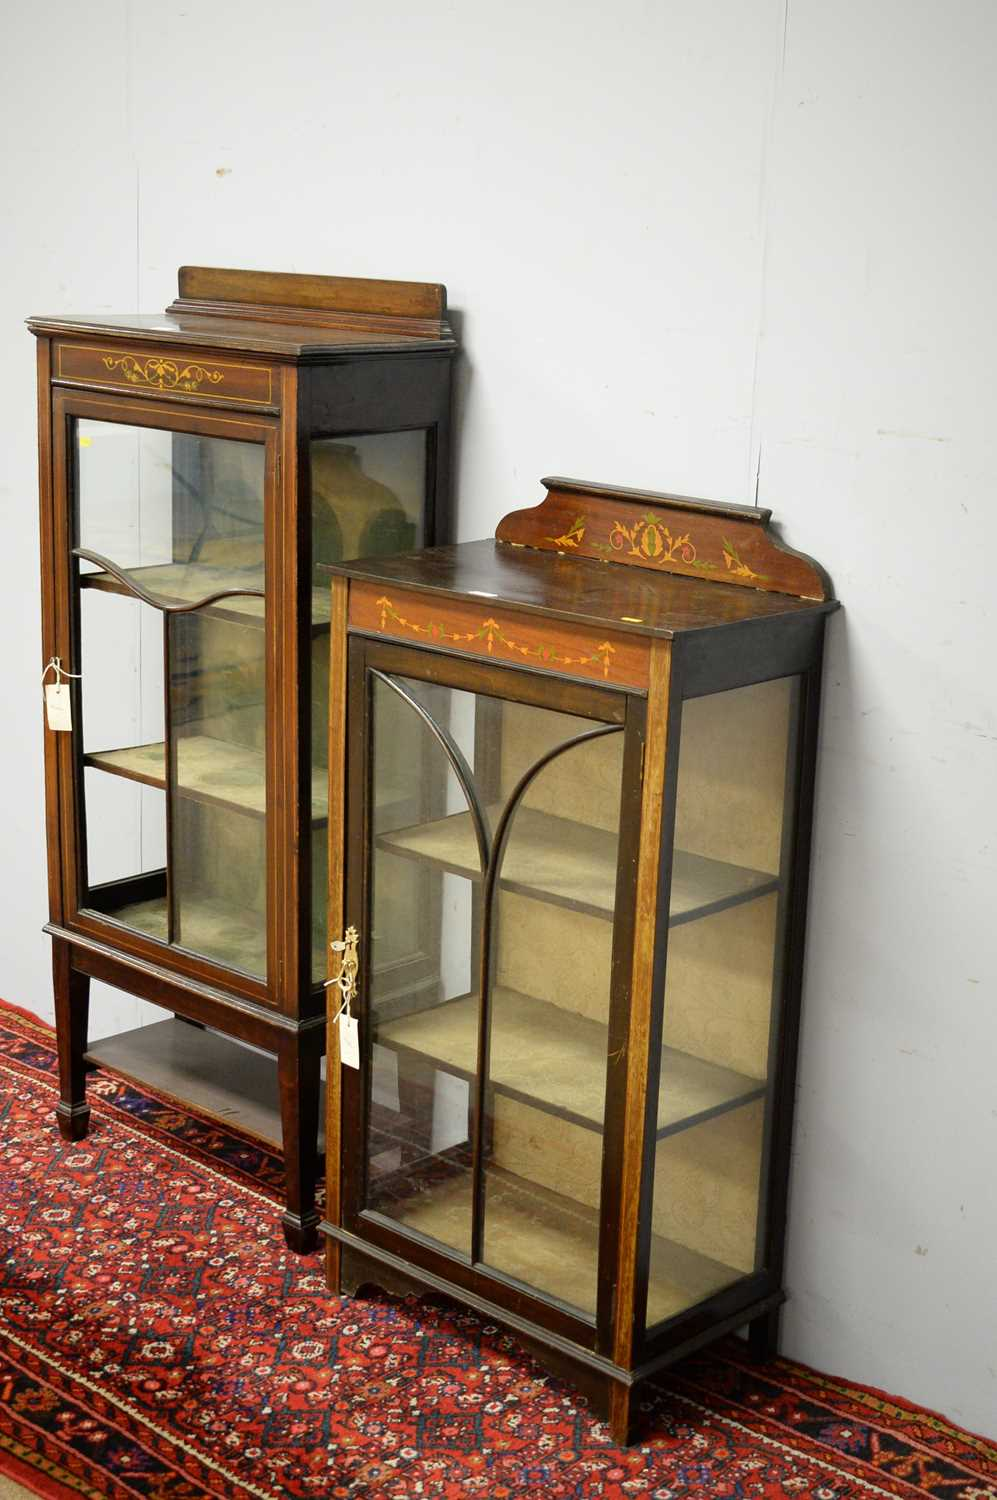 Two early 20th C display cabinets. - Image 6 of 6